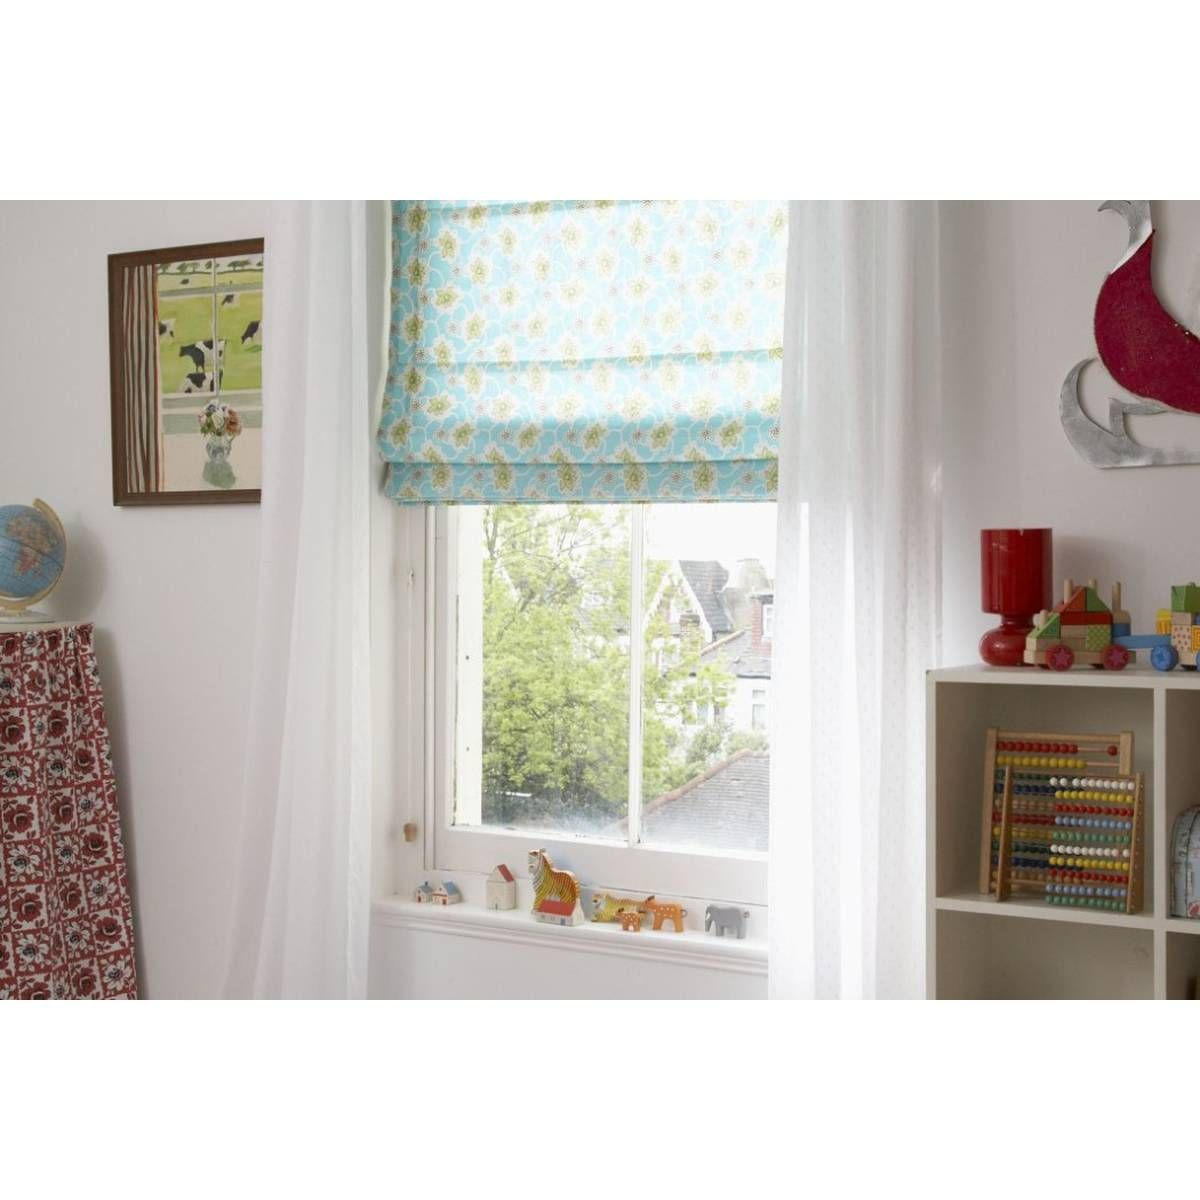 Free Pattern How To Make A Roman Blind | Hobbycraft | simple sewing ...